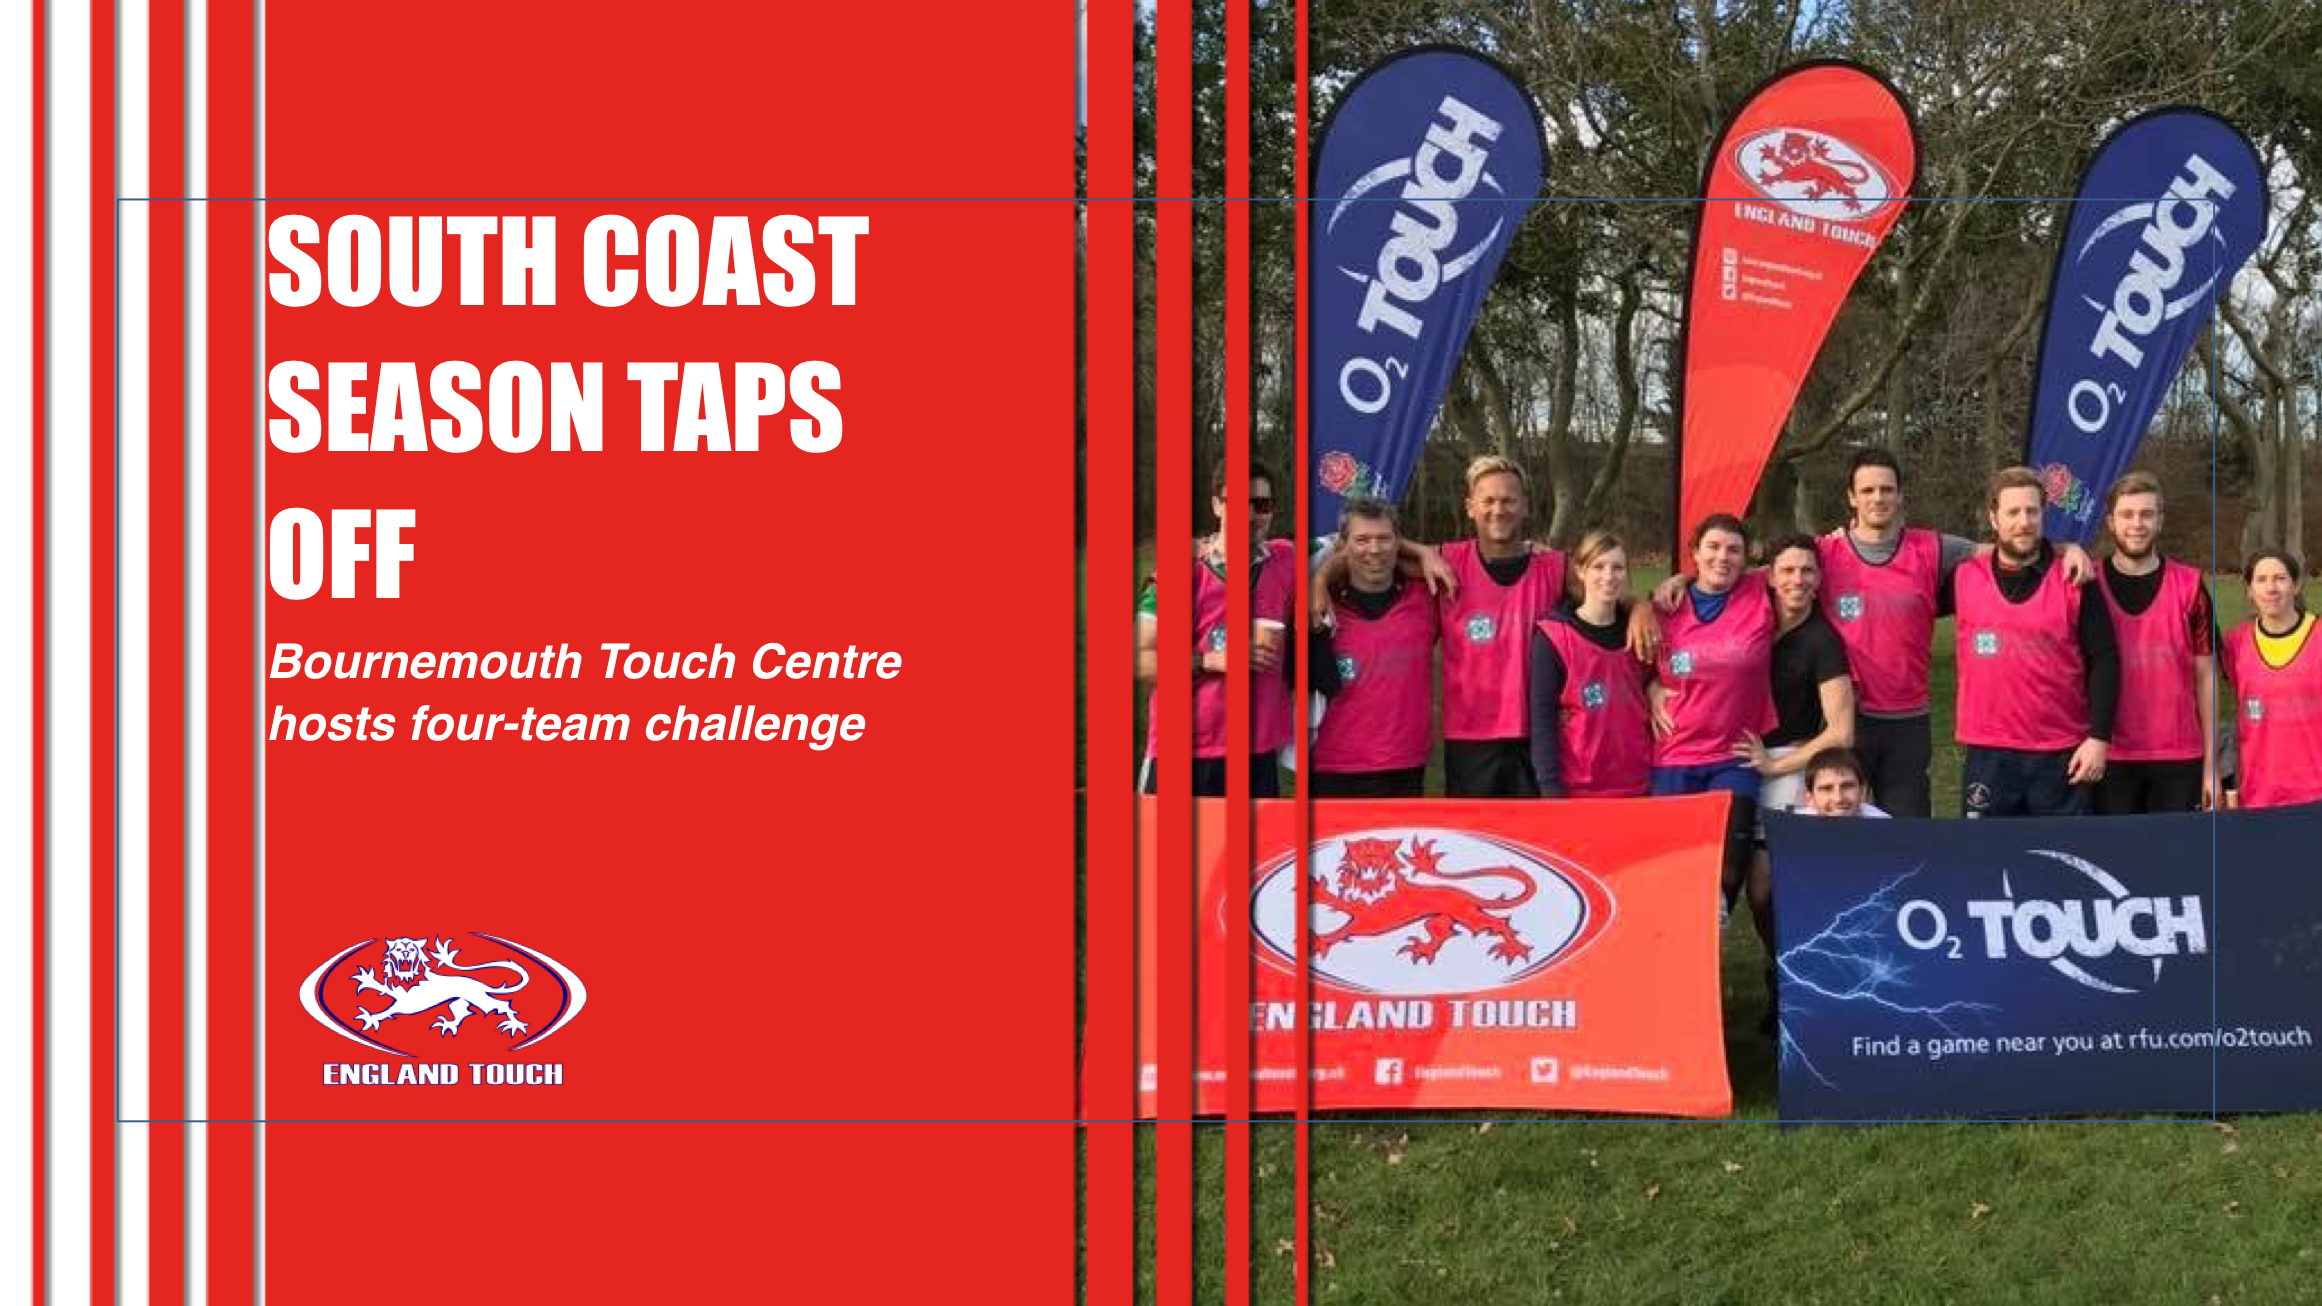 """Challenge on"" at Bournemouth Touch Centre"